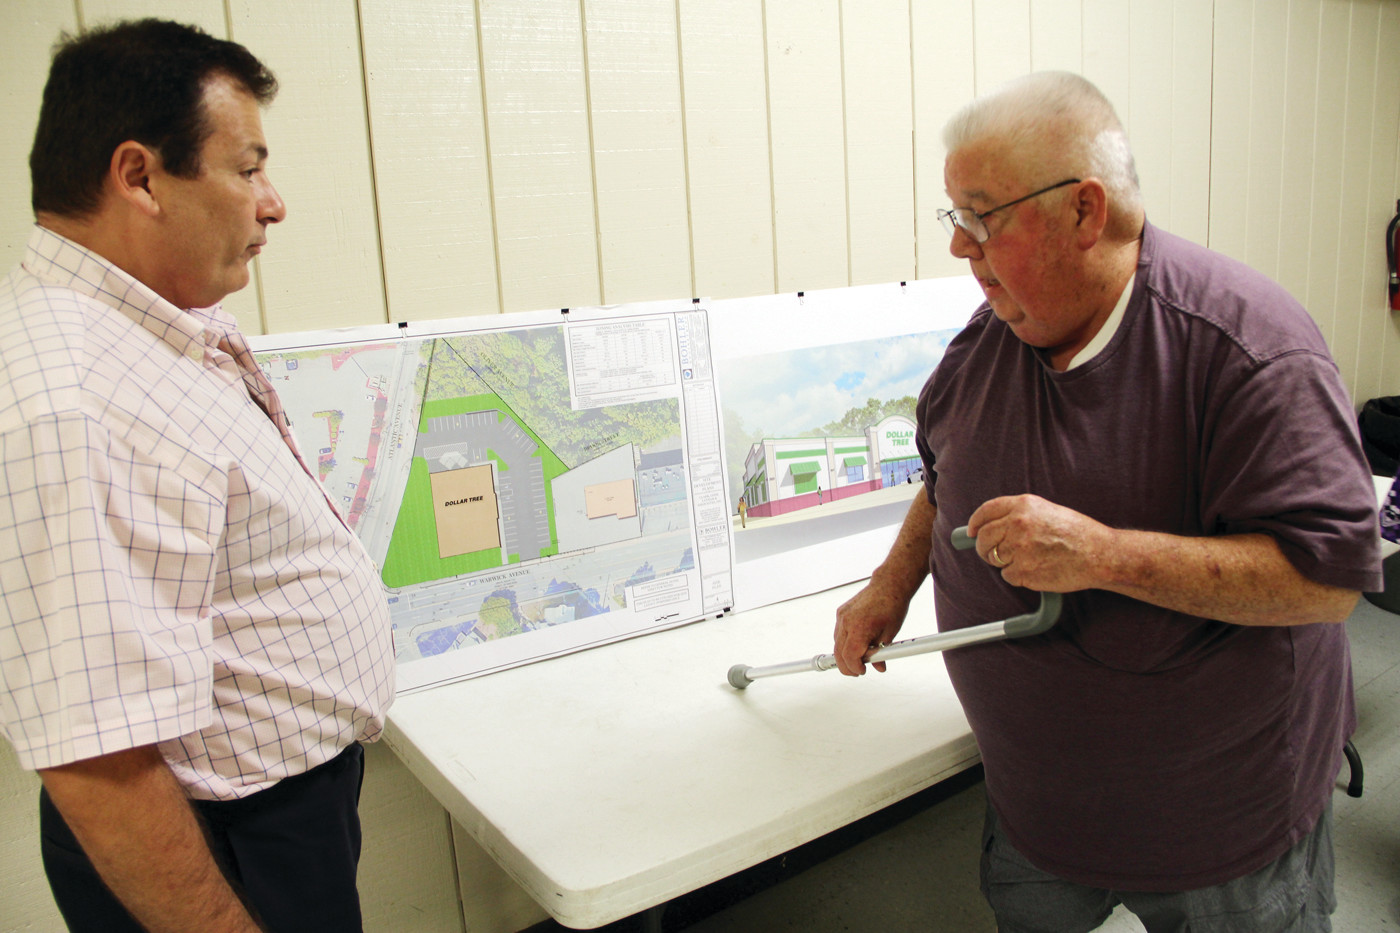 QUESTIONS ANSWERED: Attorney K. Joseph Shekarchi, who presents developers of a proposed Dollar Tree store and James King, a neighbor to the development, review plans at an informational meeting held last week at the Warwick Firefighters Association hall.